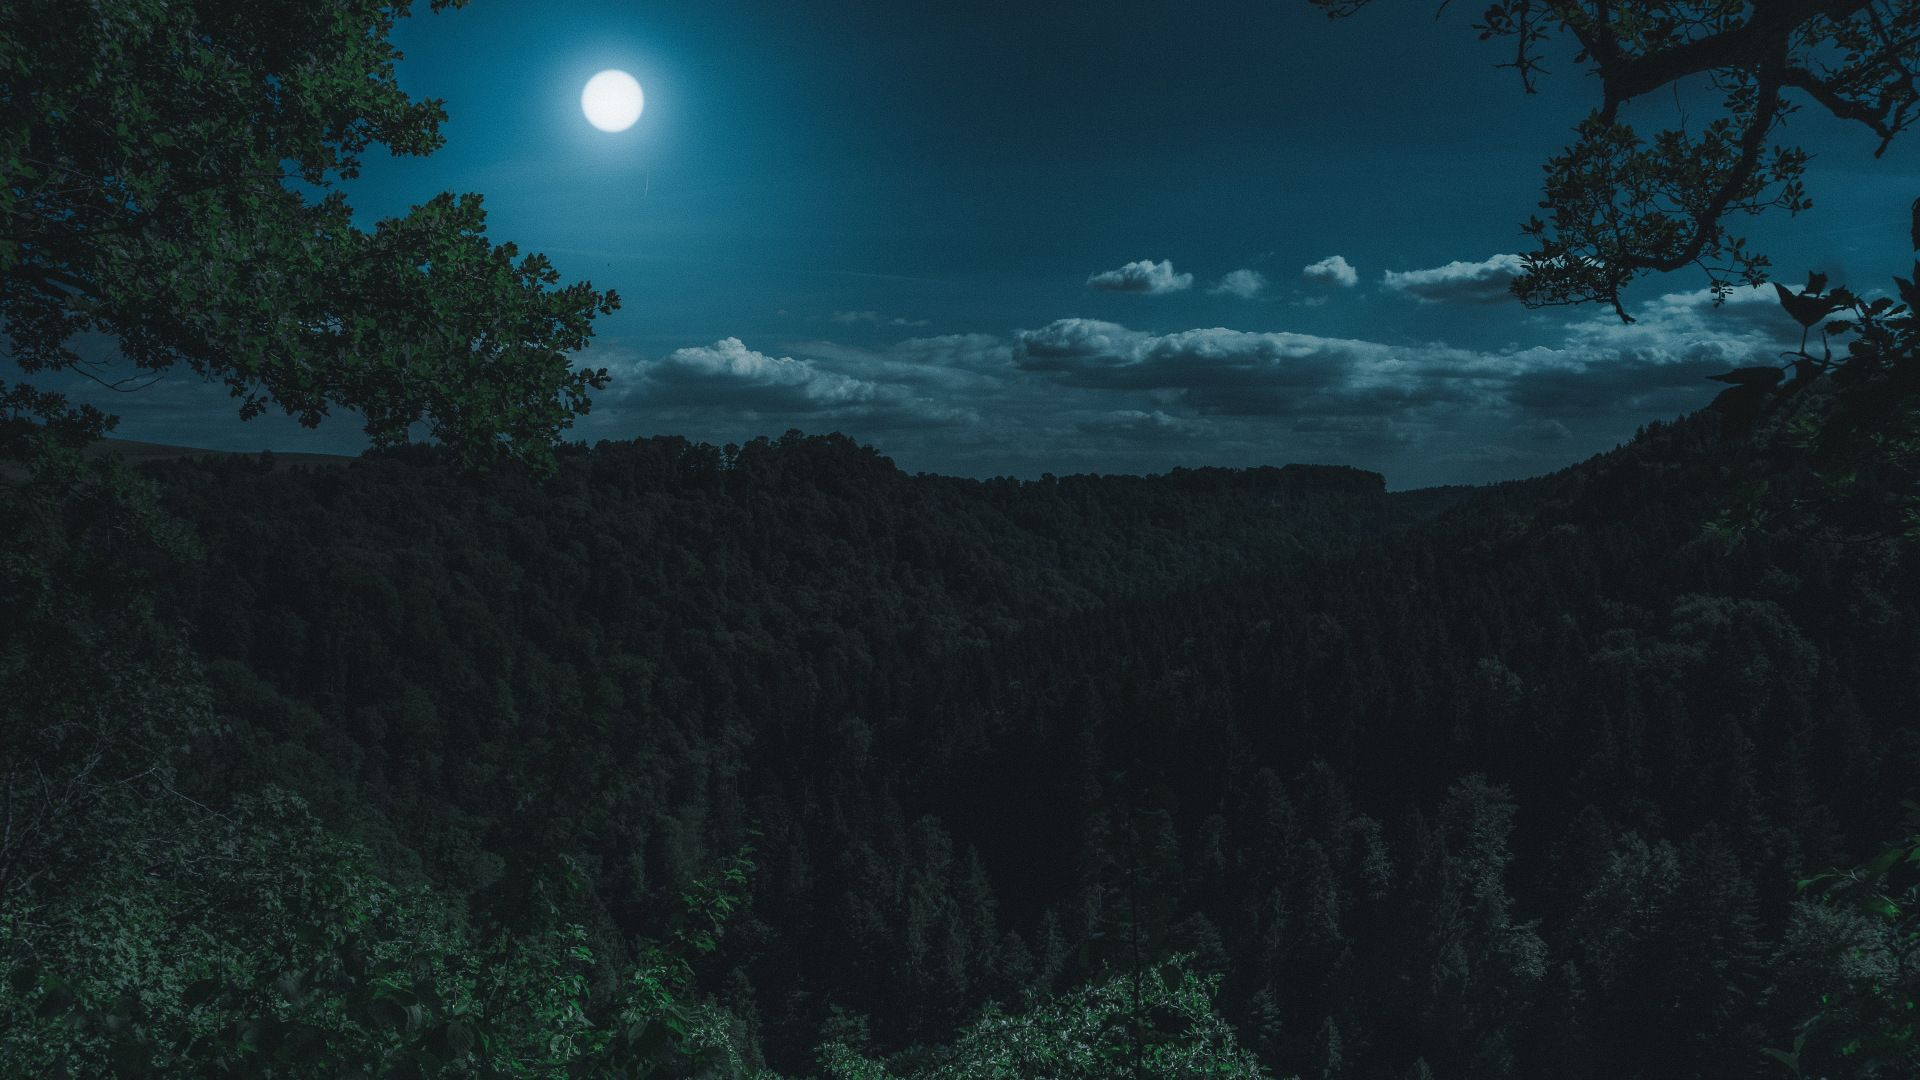 Green Forest Trees Night Moon Nature 1920x1080 Wallpaper Night Landscape Landscape Photography Tutorial Landscape